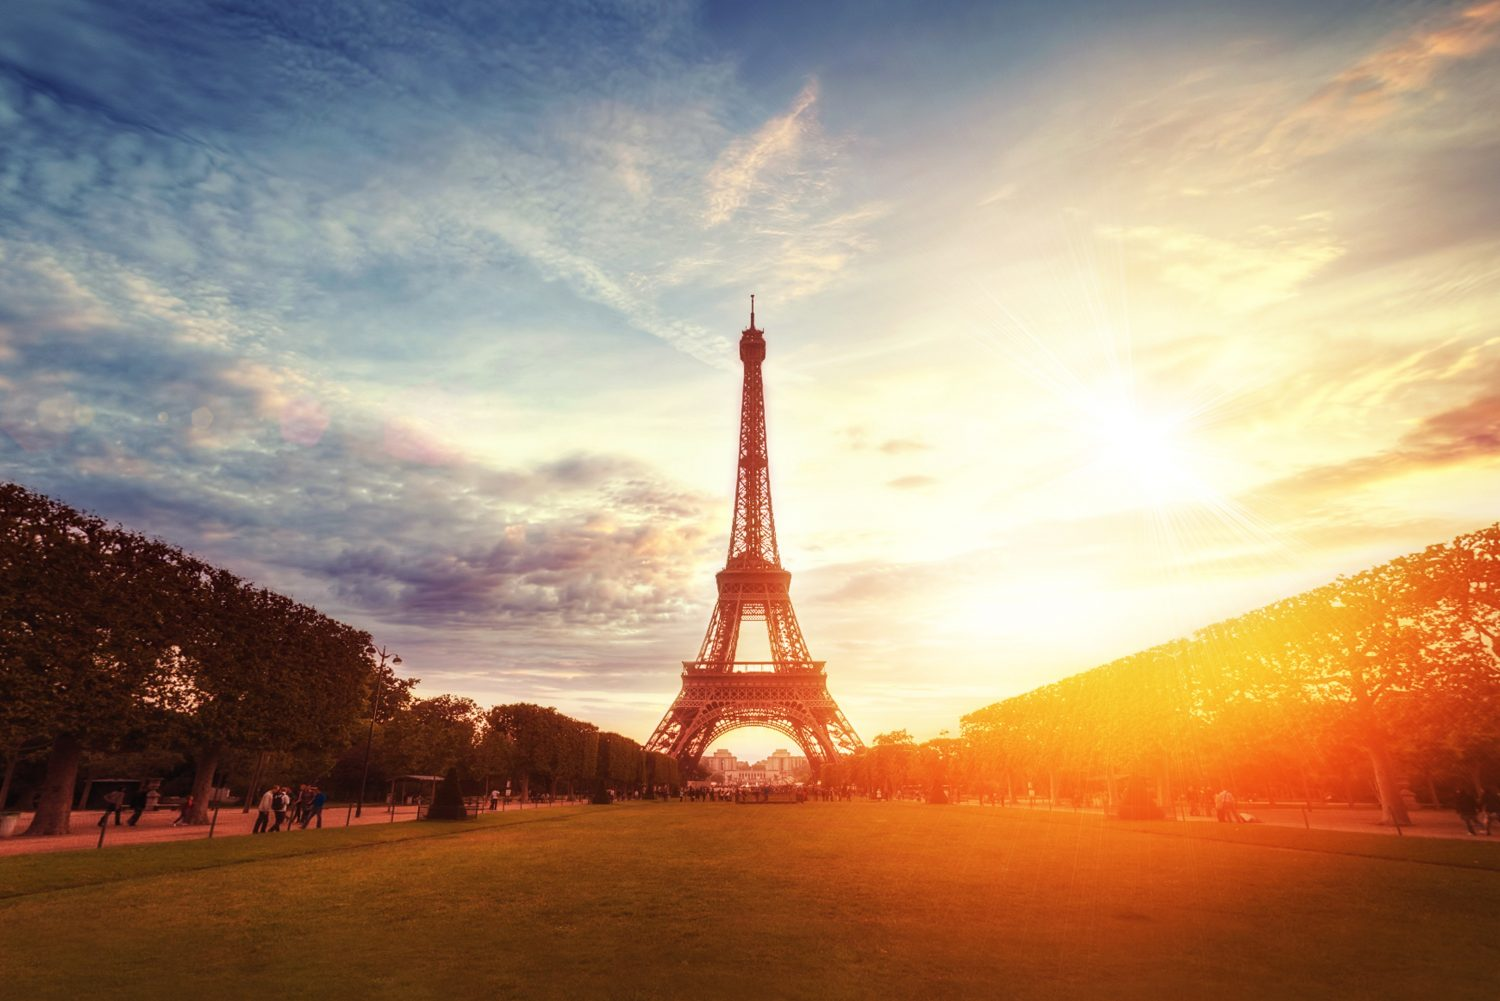 Can you ace this super tough quiz about European landmarks? Click through to find out!